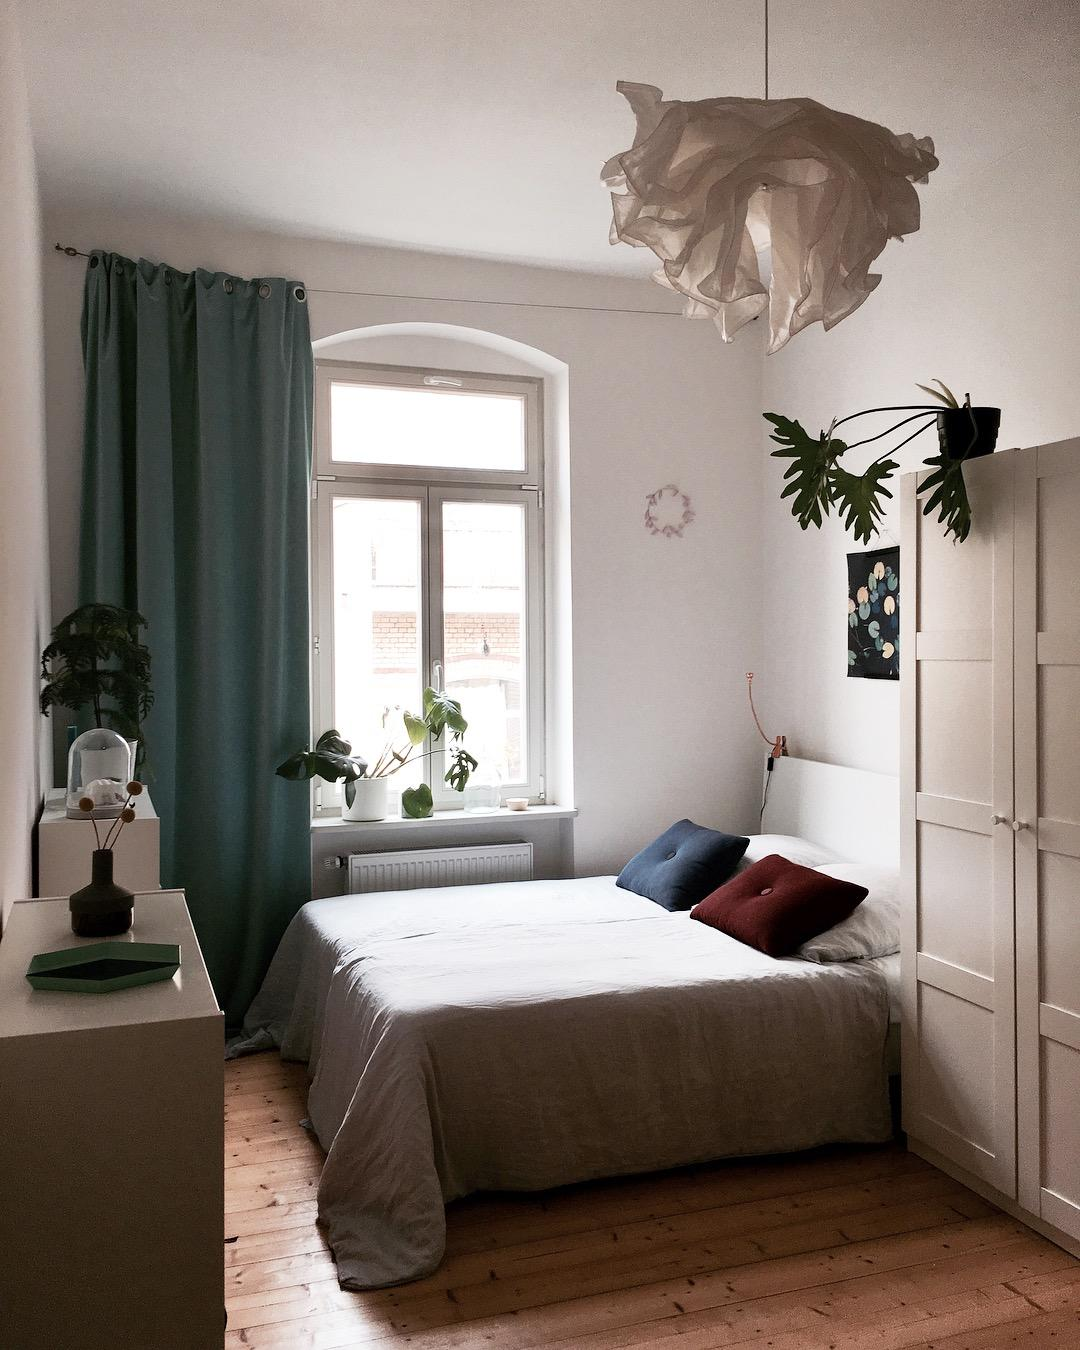 Good night...